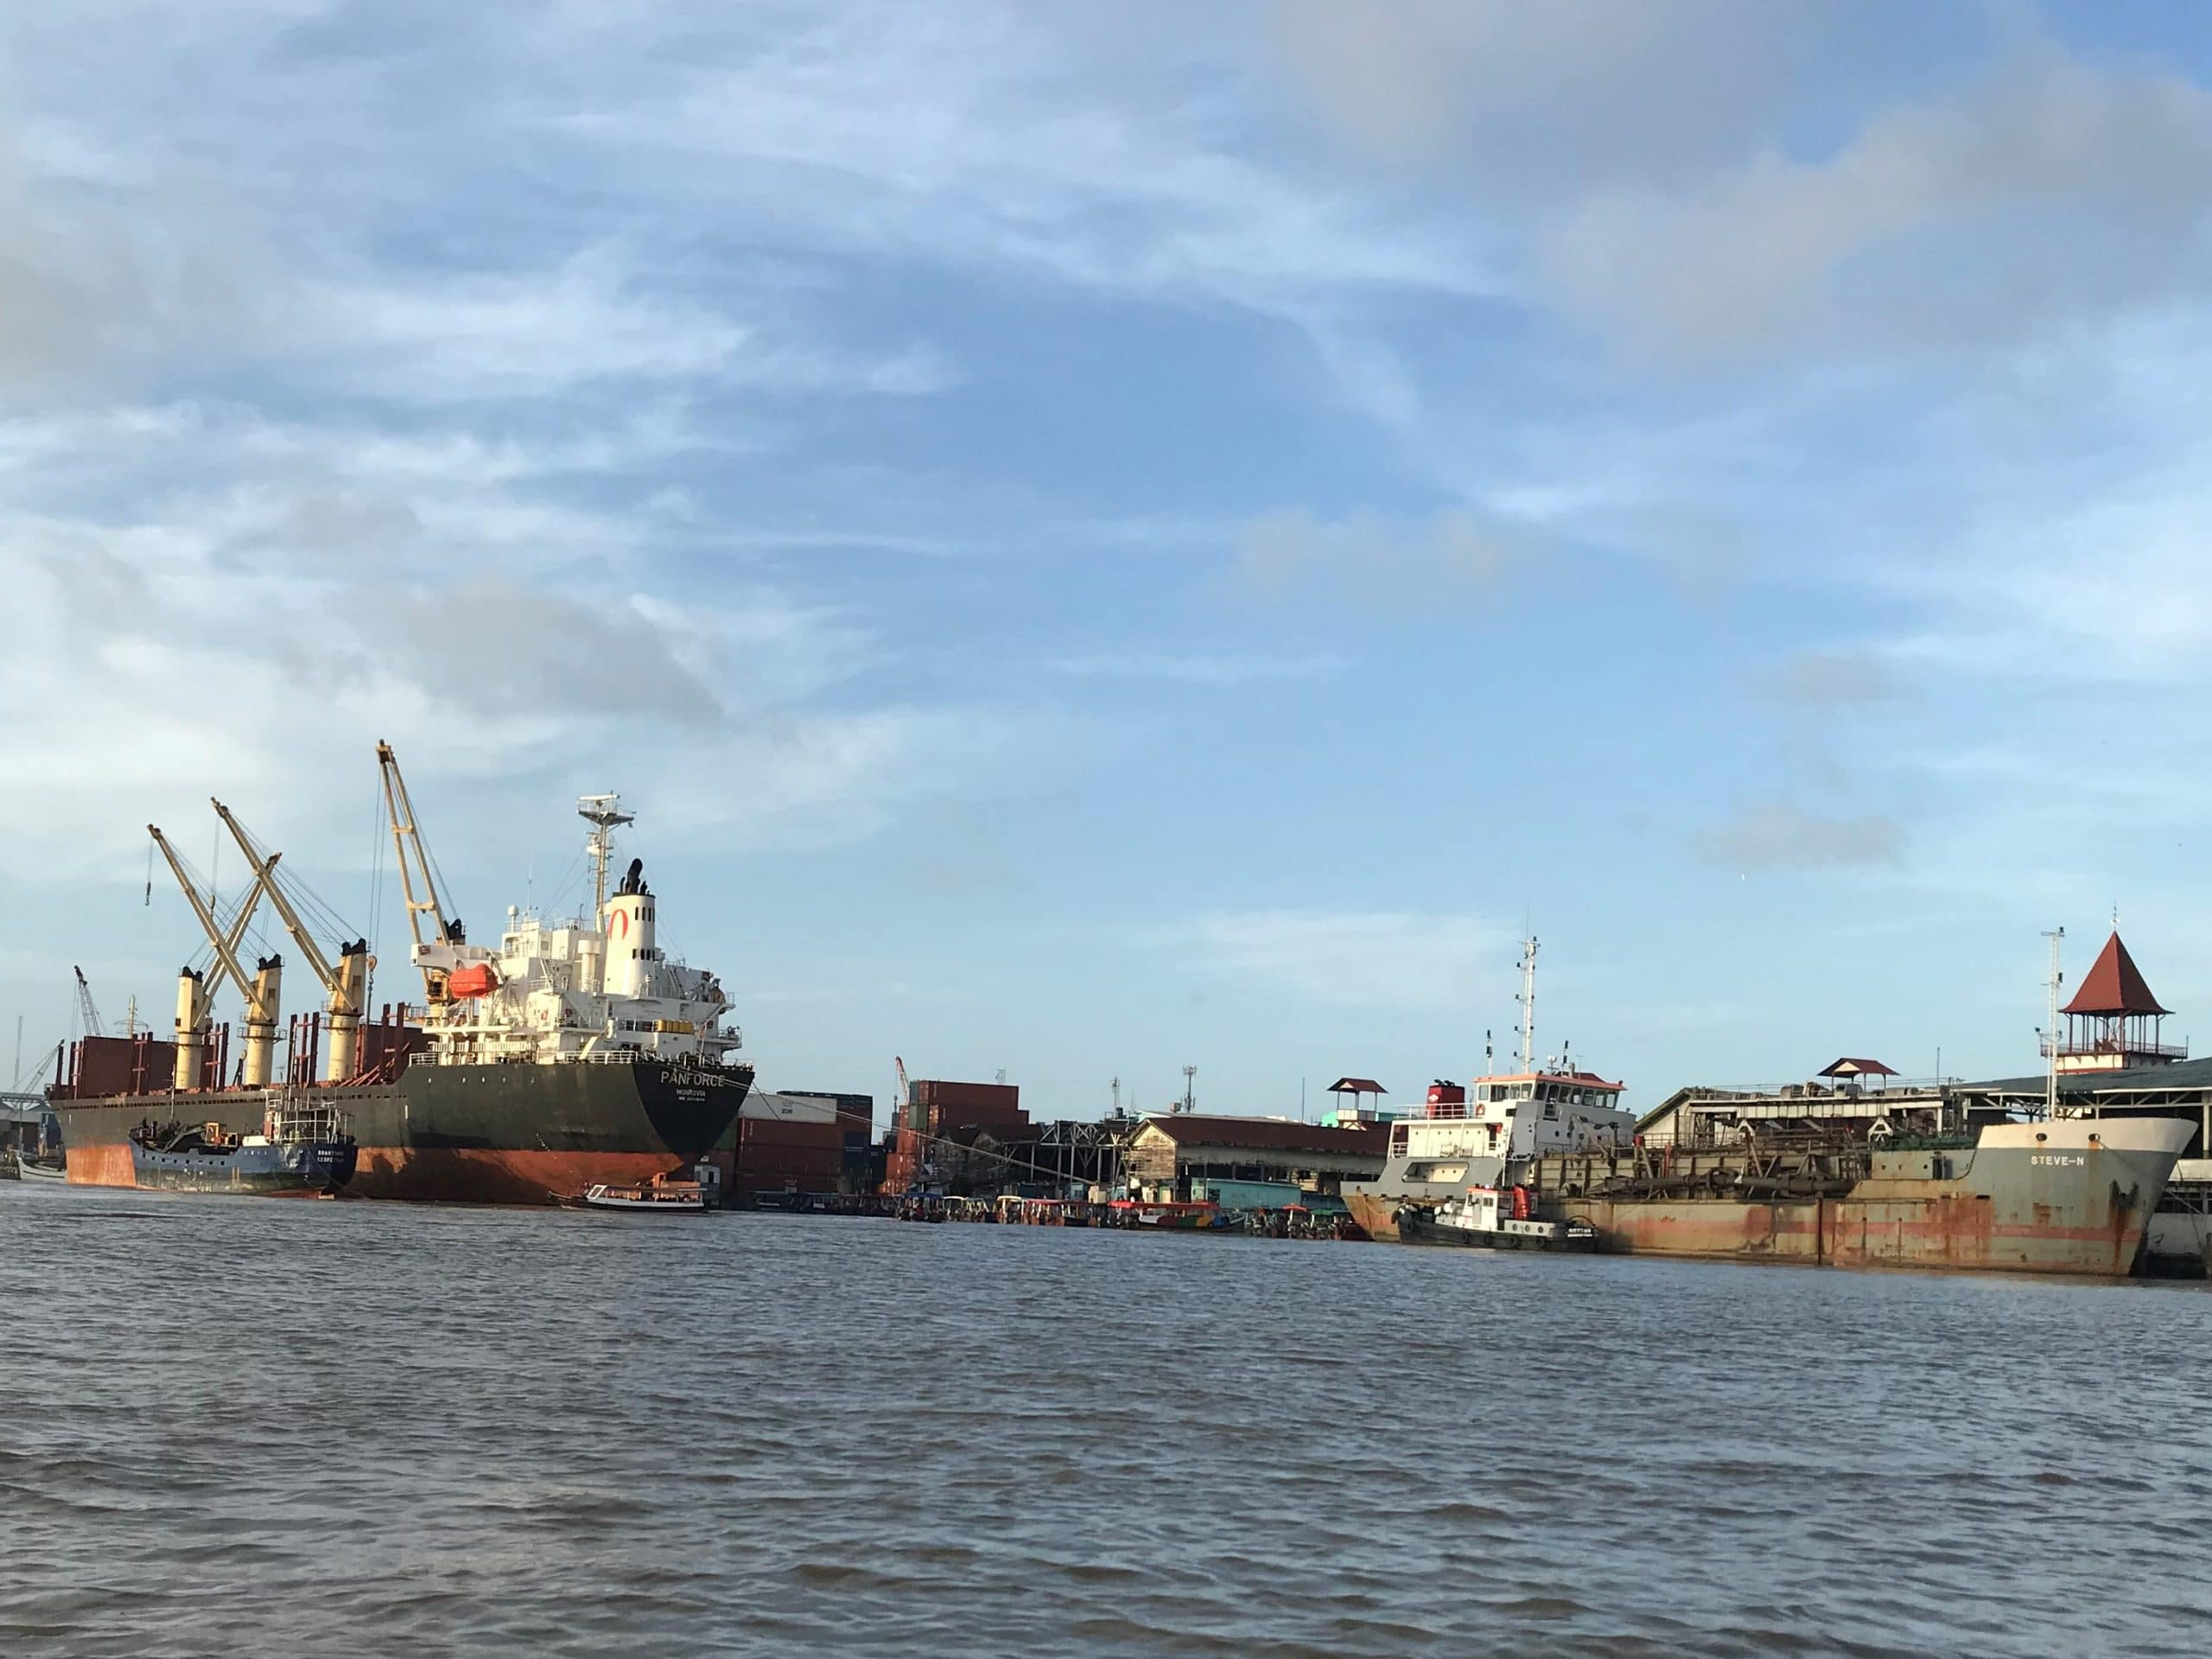 Feasibility Study and Site Analysis for a New Deep-Water Port in Guyana